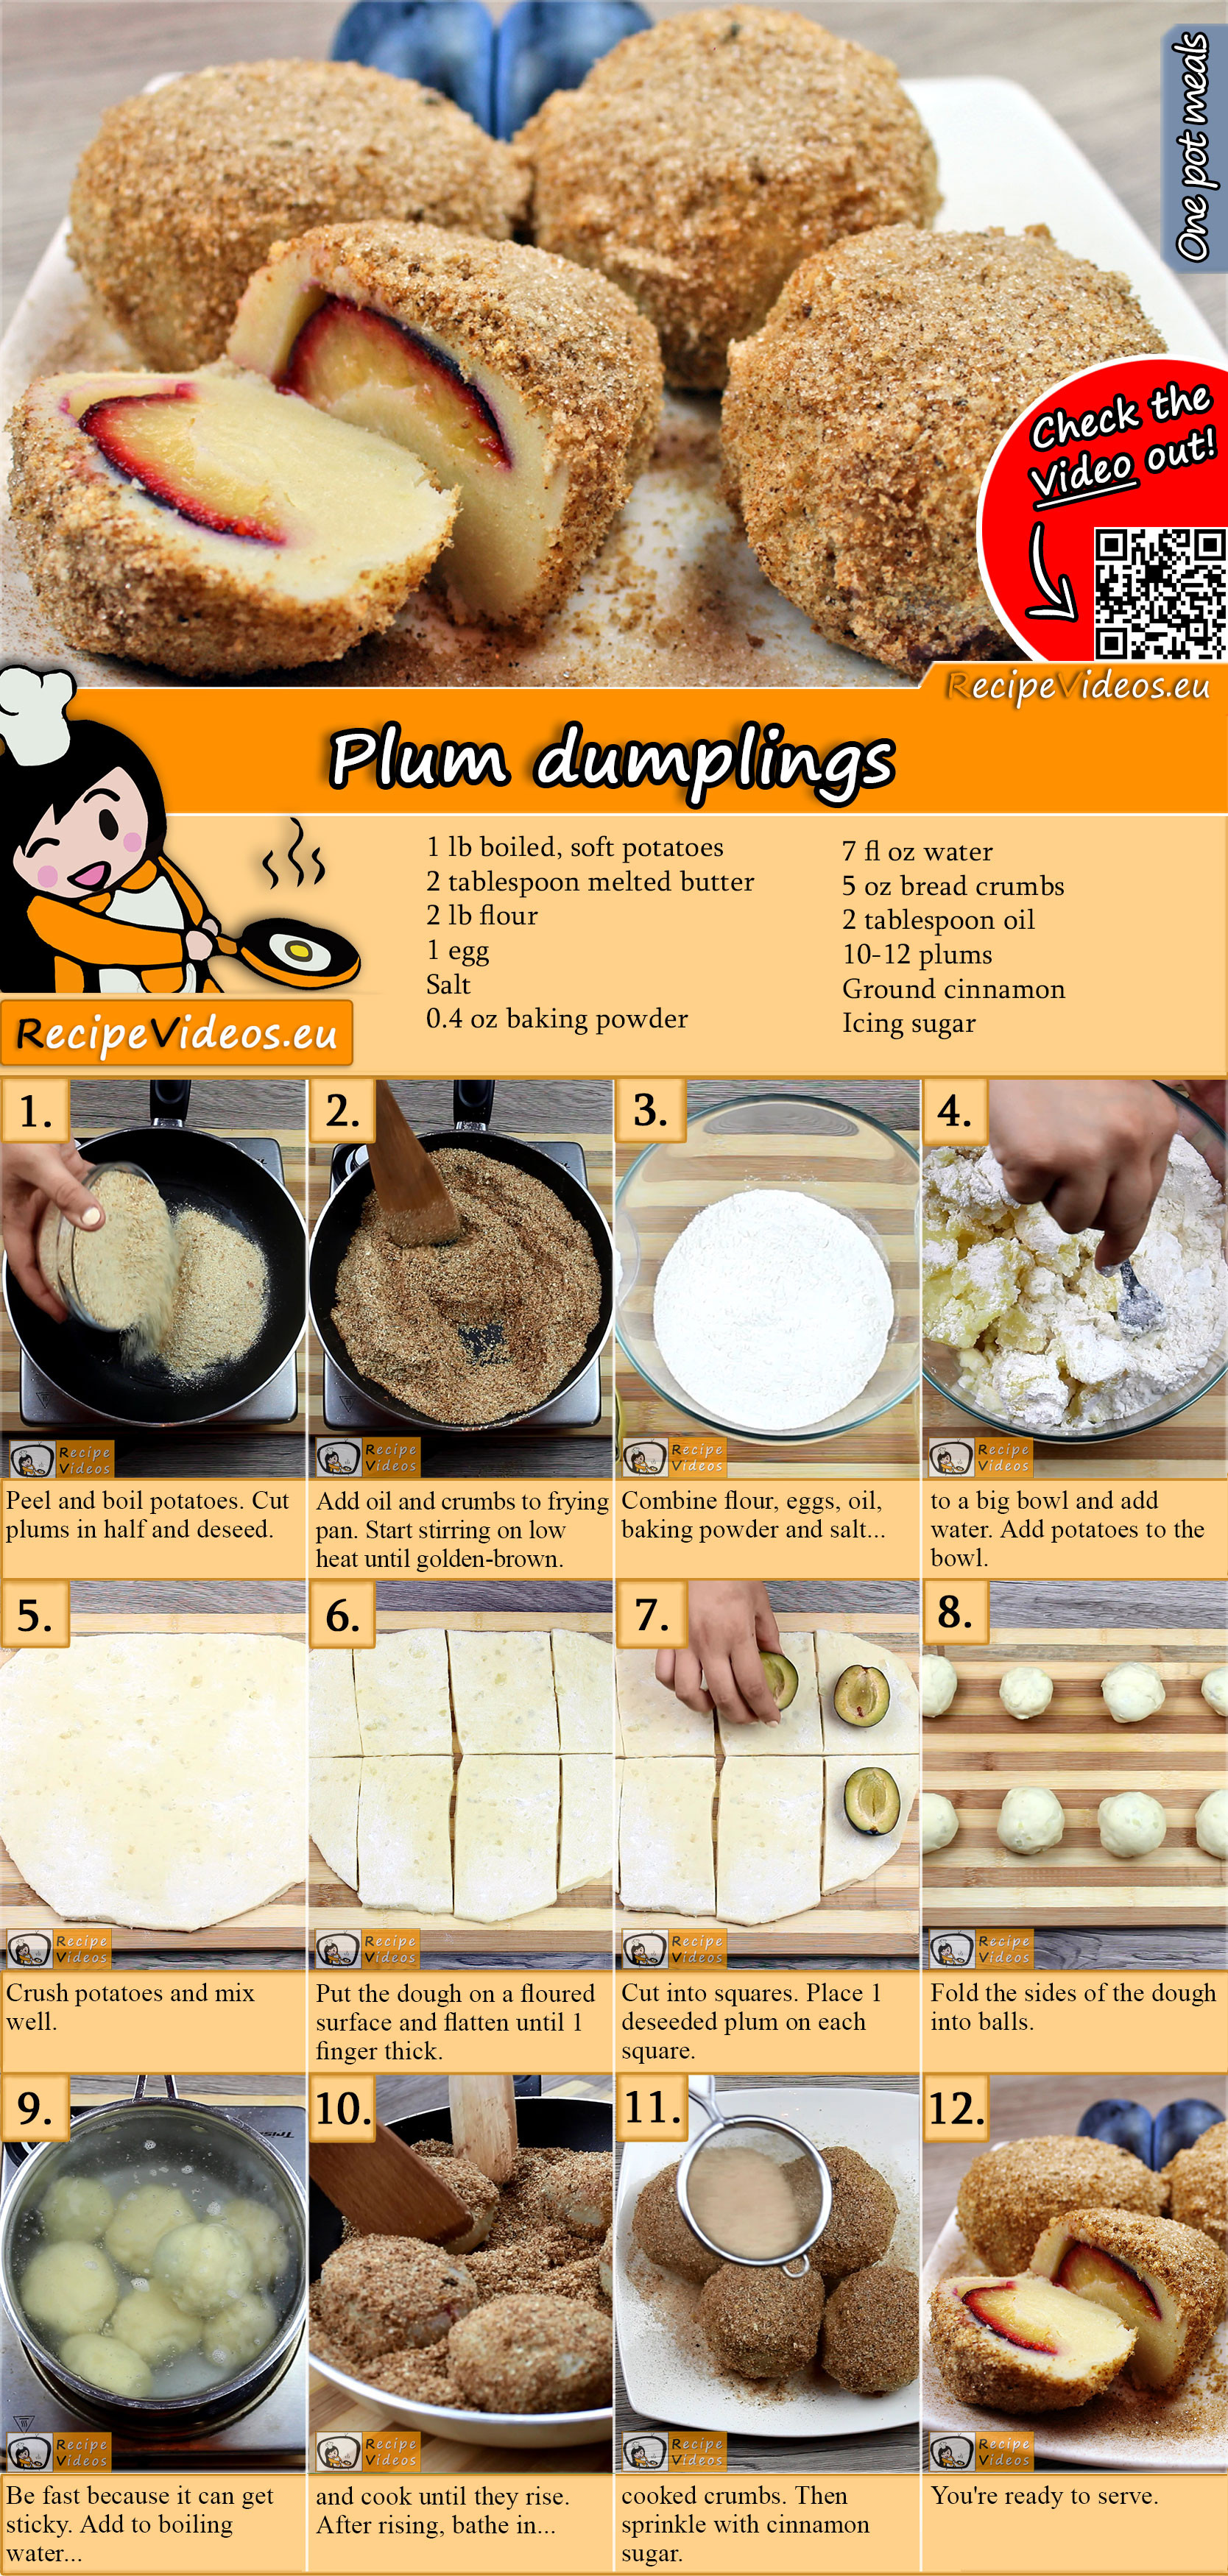 Plum dumplings recipe with video